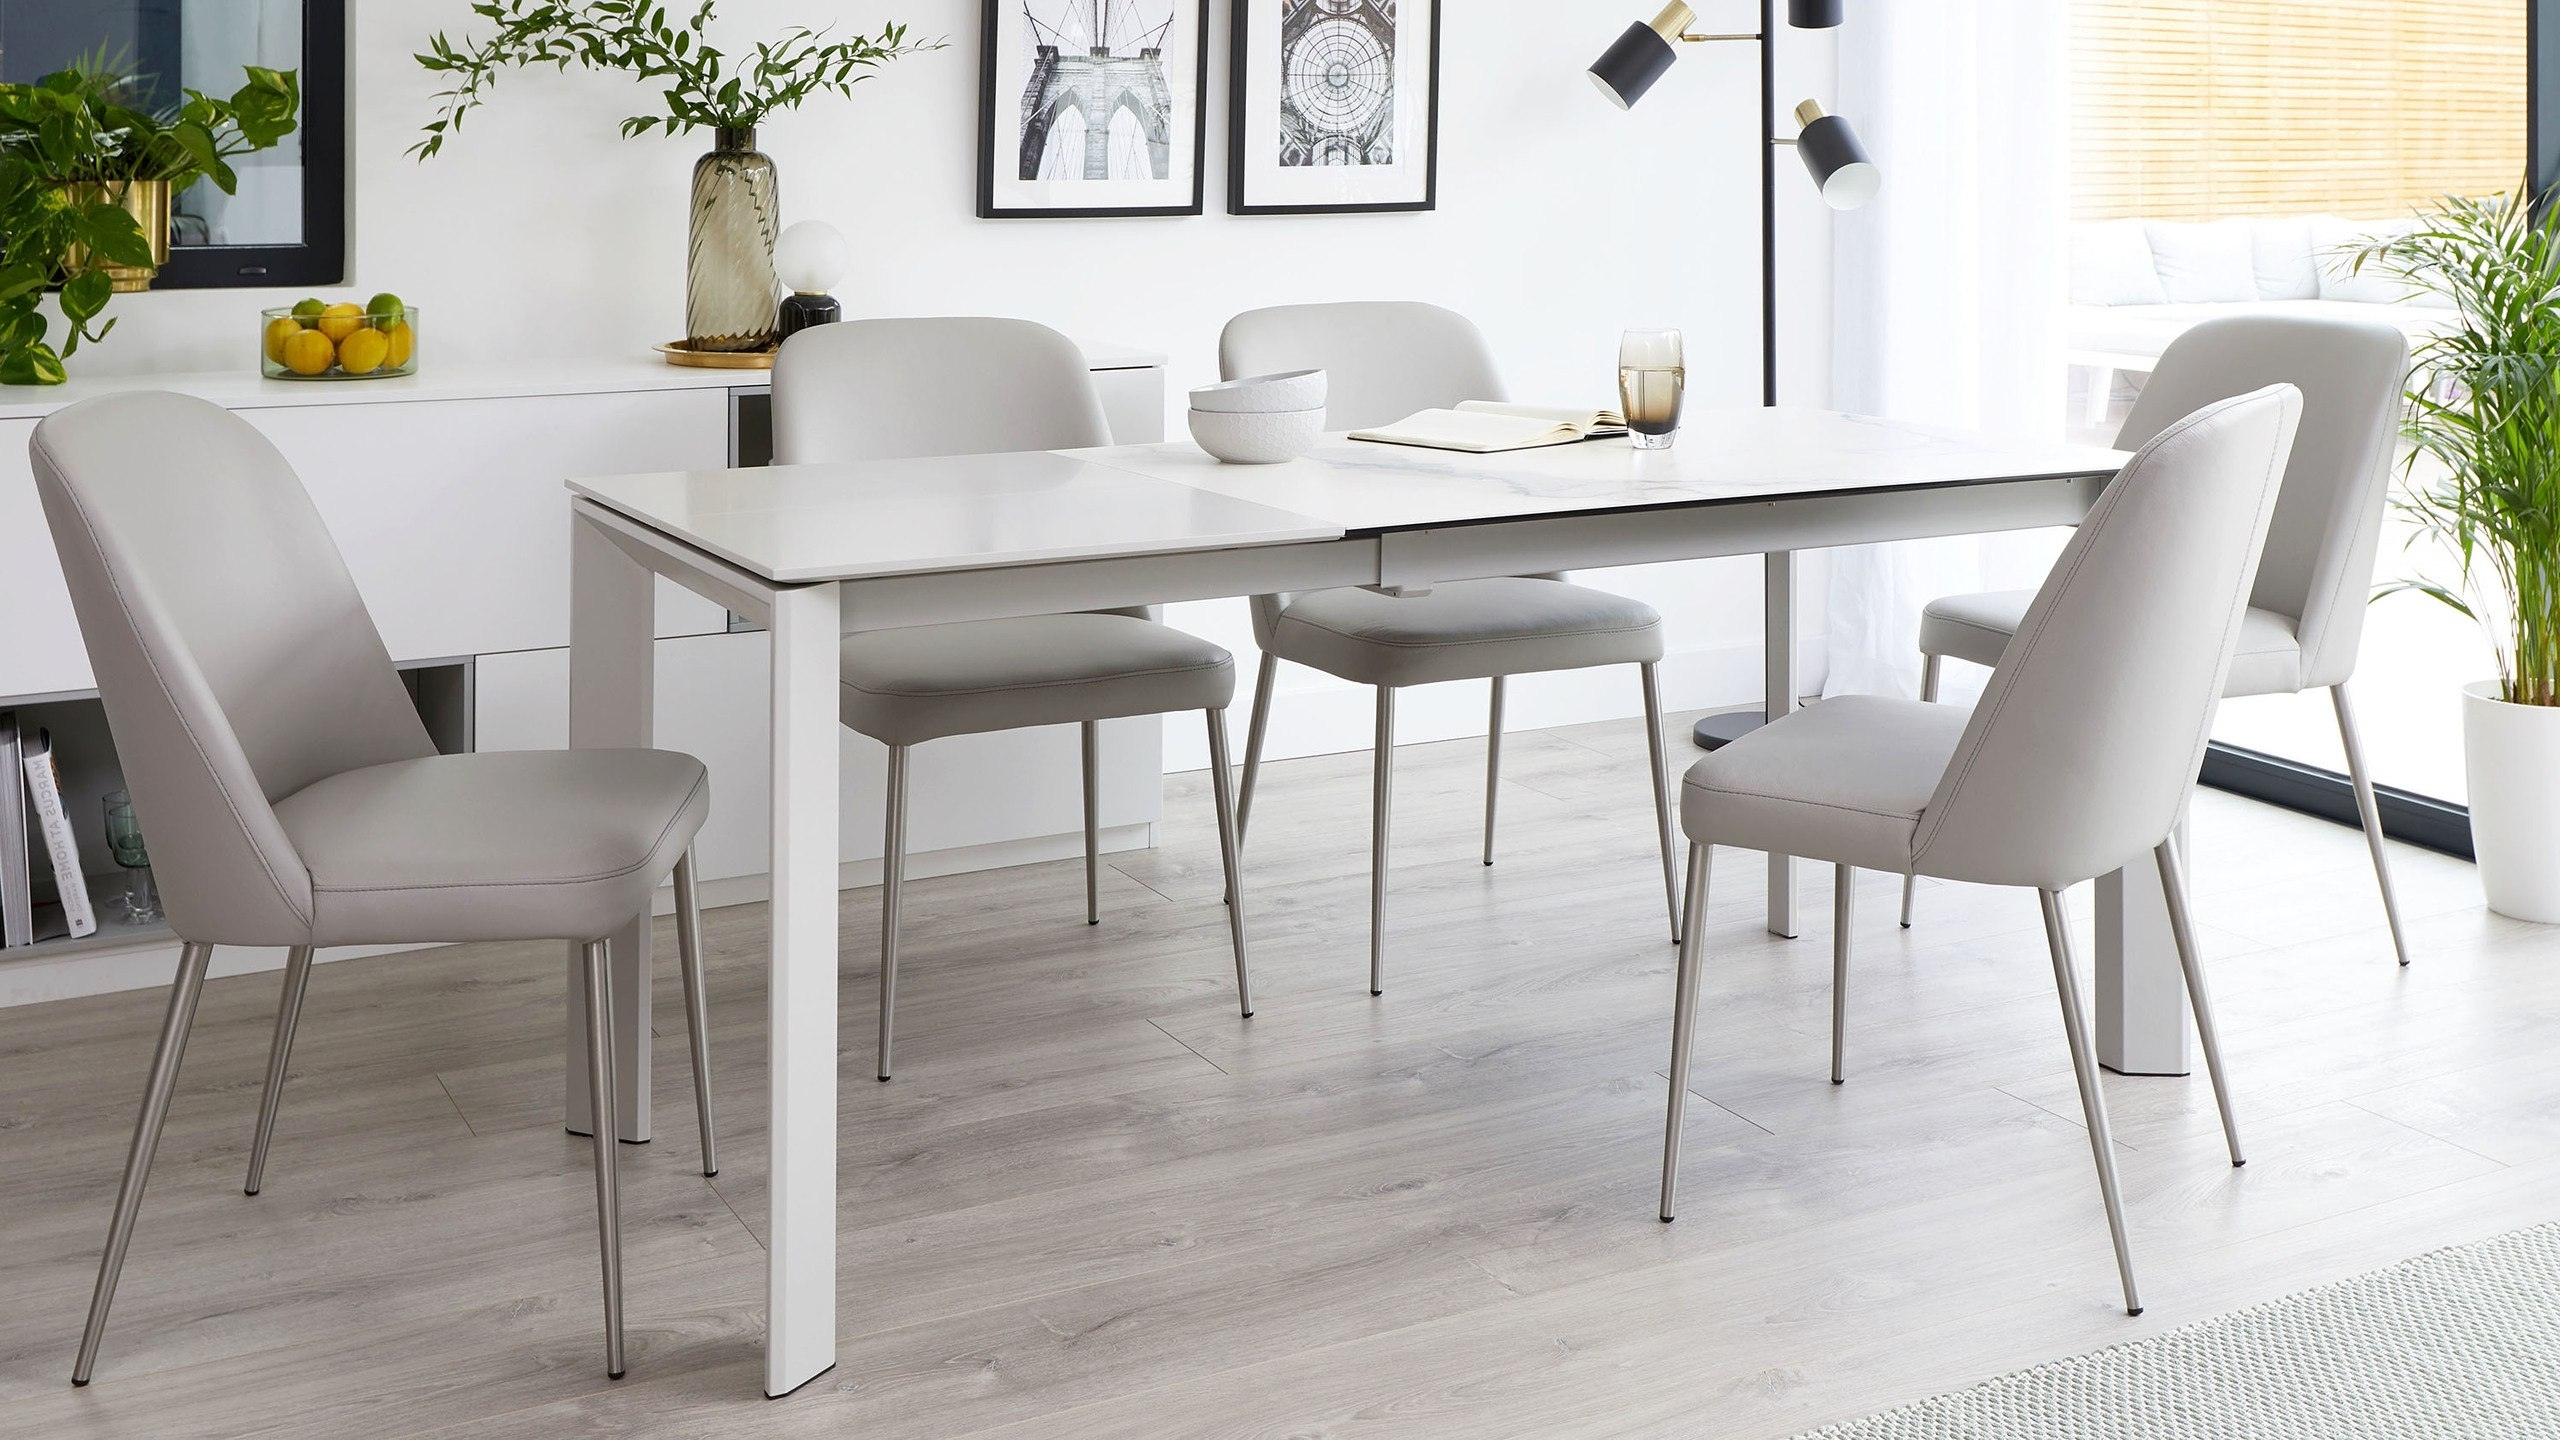 Most Current Extending Marble Dining Tables Pertaining To Louis Extending Dining Table: Product Spotlight – Danetti Lifestyle (View 18 of 25)